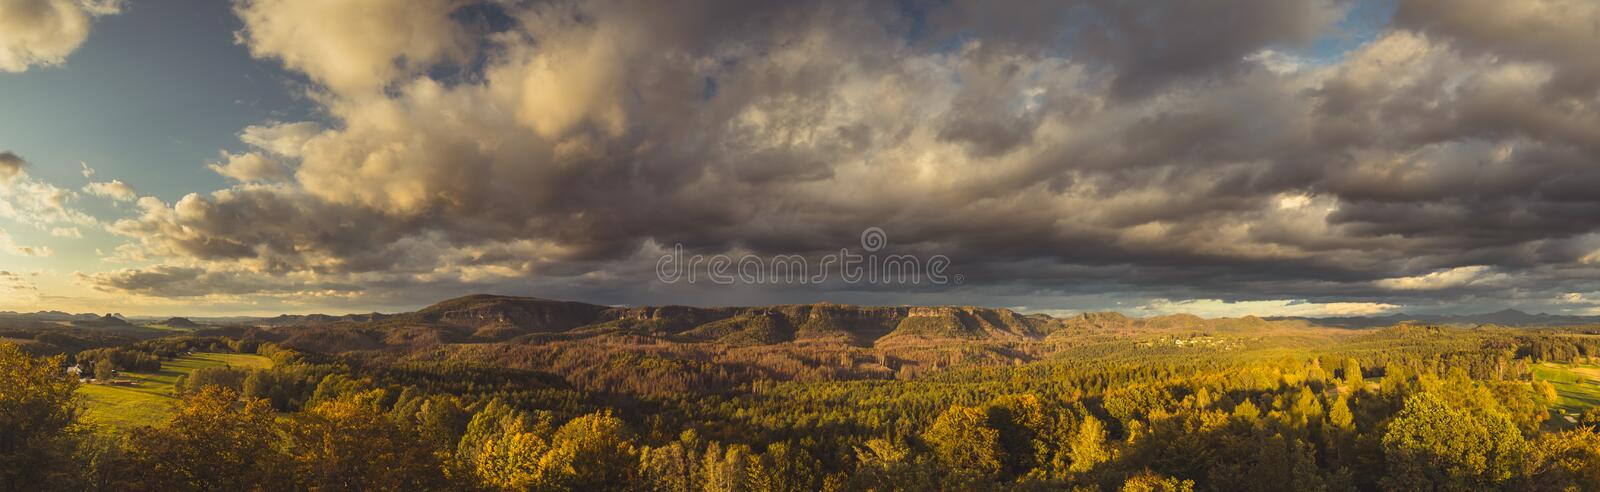 Autumn landscape at sunset - mountains, forests and beautiful clouds illuminated by the setting sun stock photo